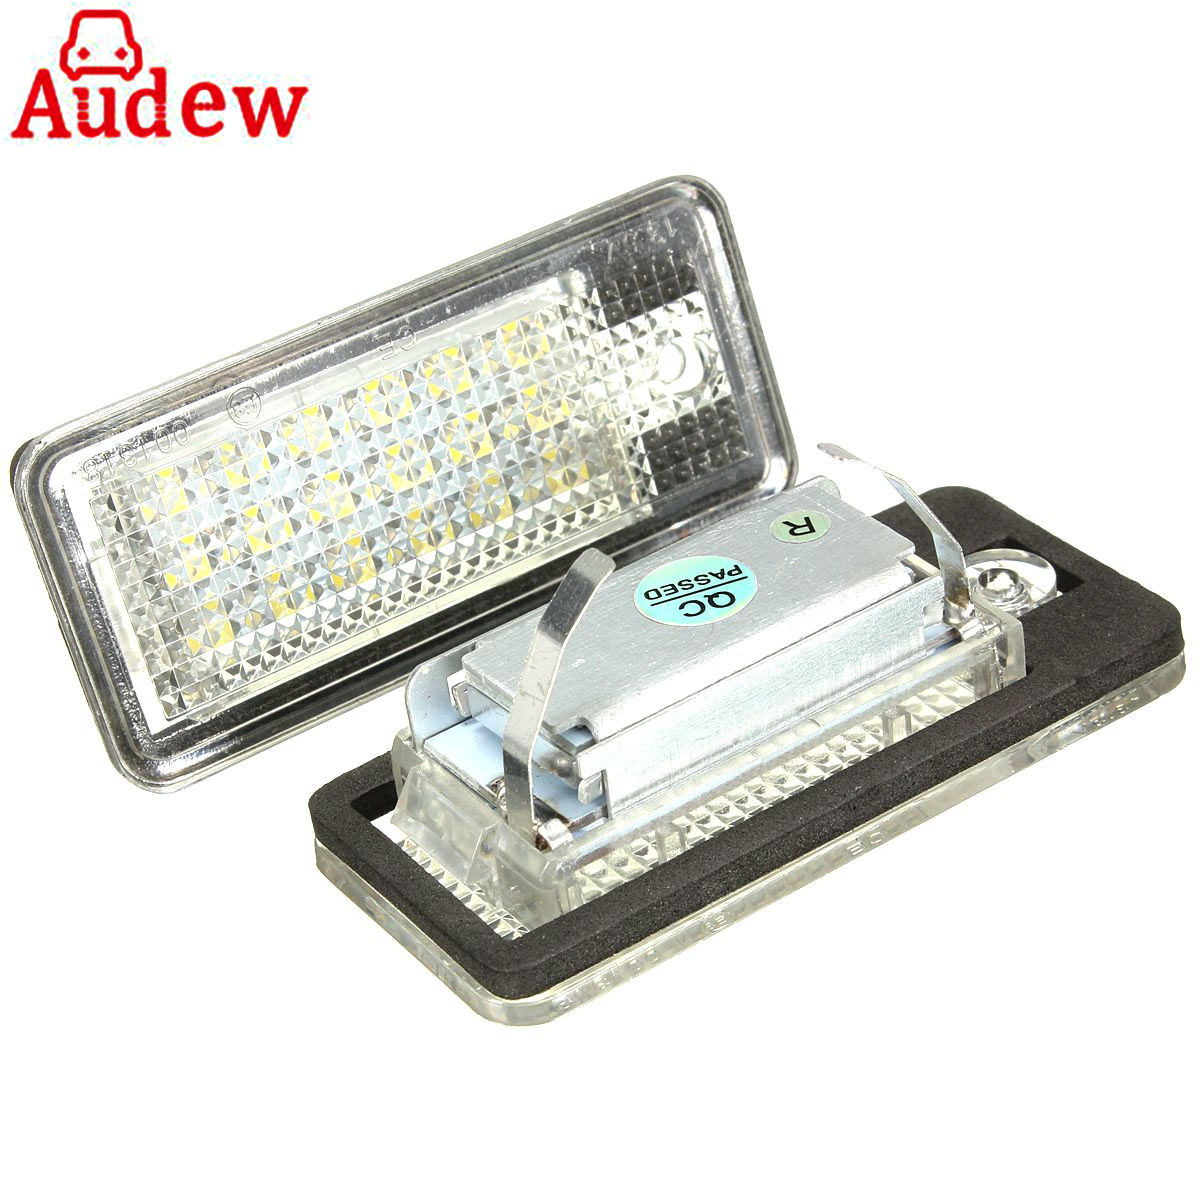 2Pcs Car Error Free 18 LED License Number Plate Light White Lamp For Audi A3 S3 A4 S4 B6 B7 A6 S6 A8 Q7 hopstyling 2pcs direct fit white 18 smd car led license plate light lamp for nissan teana j31 j32 maxima cefiro number light